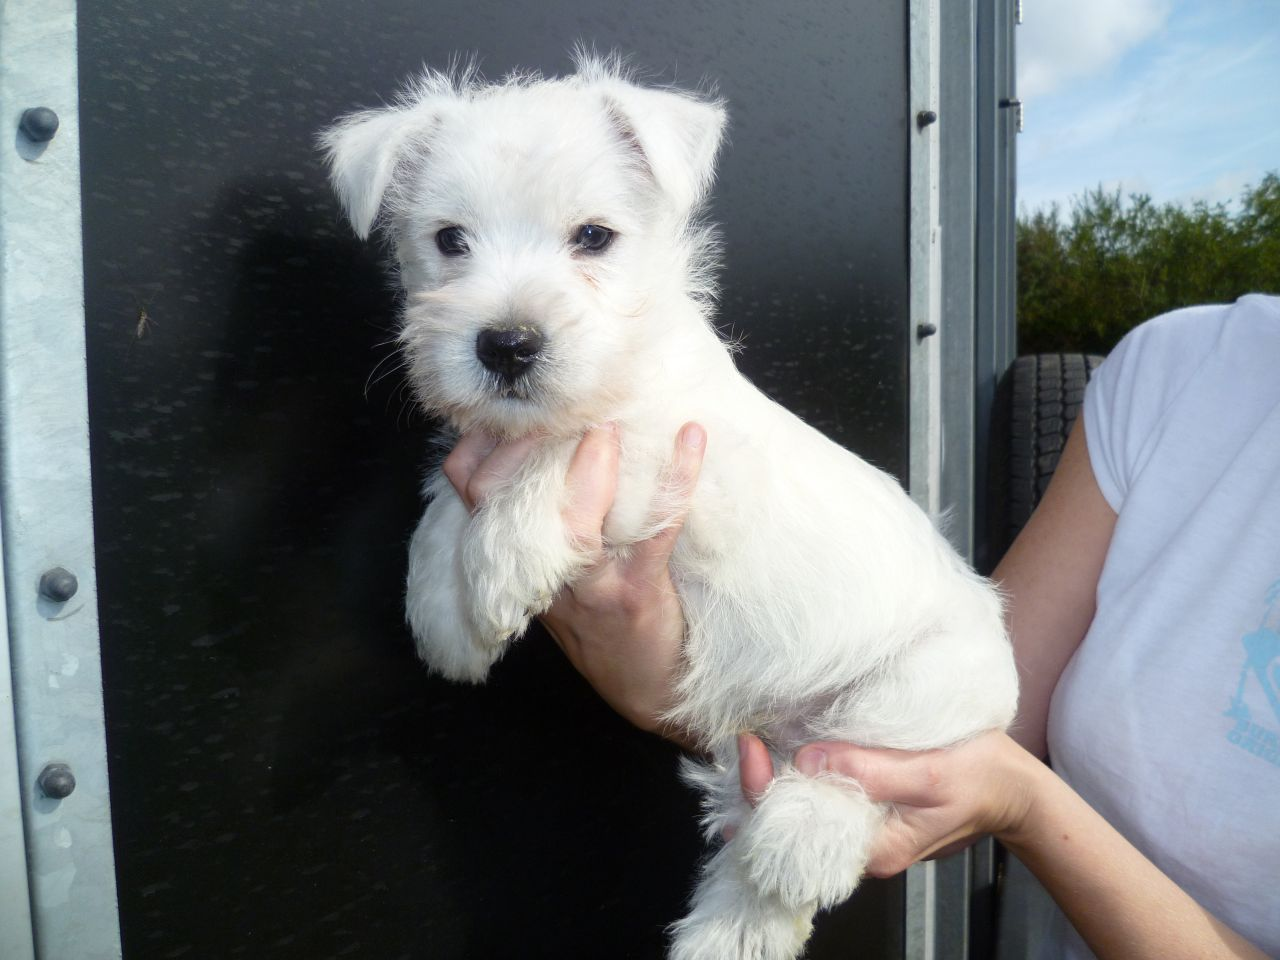 They might look cute and cuddly, but West Highland Terriers would much rather be running about than sitting on a couch. Bursting with energy, curiosity and playfulness, Westies are often game for activity.